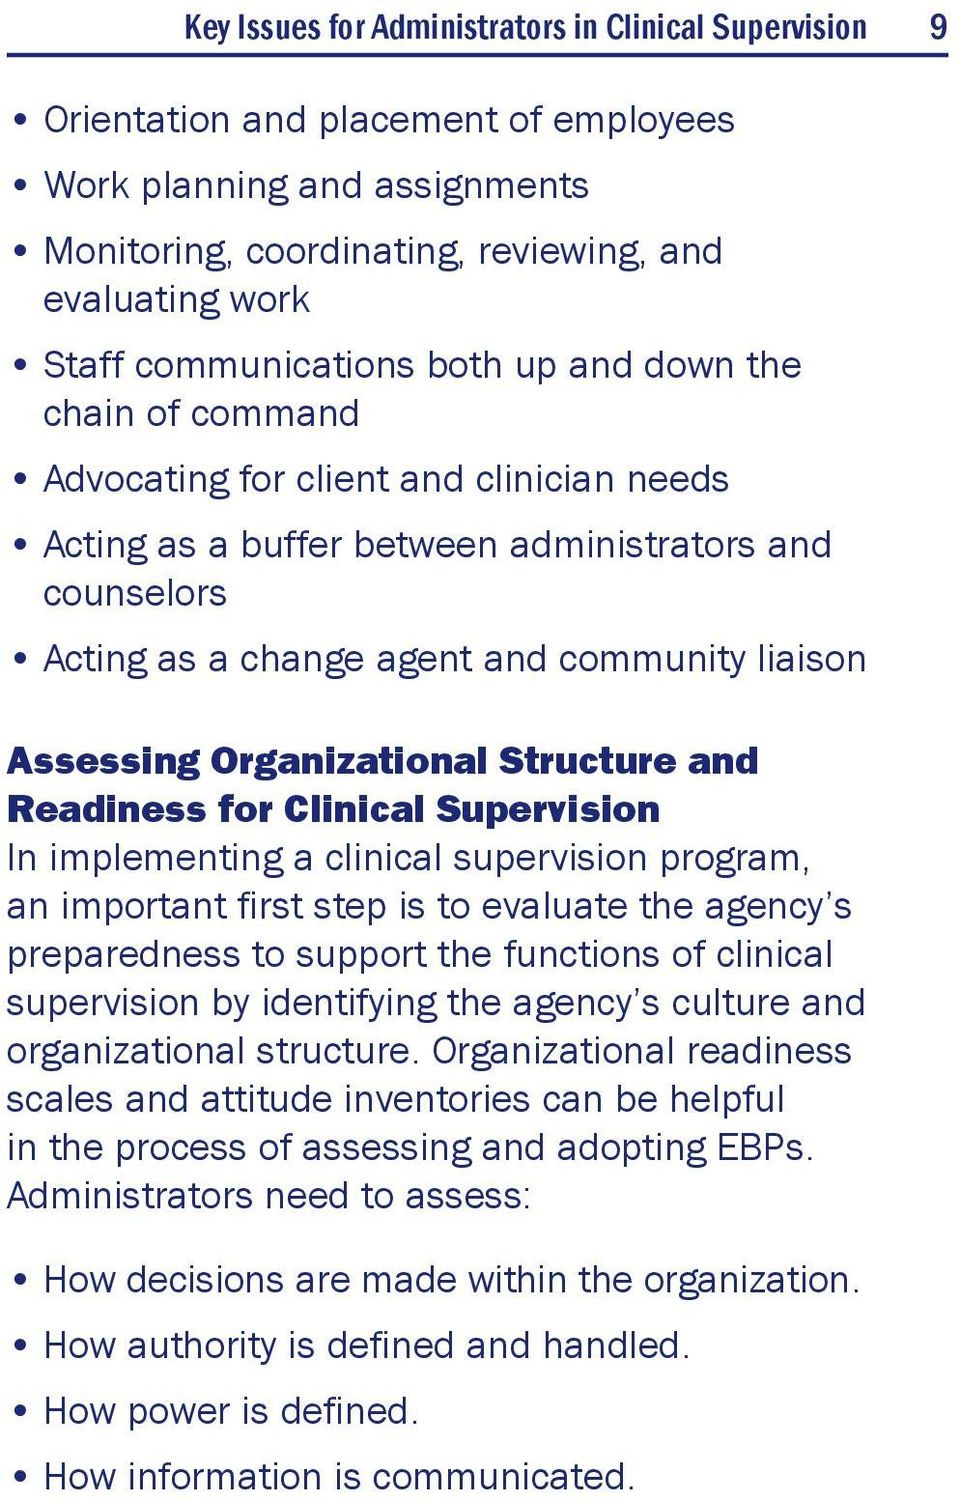 Assessing Organizational Structure and Readiness for Clinical Supervision In implementing a clinical supervision program, an important first step is to evaluate the agency s preparedness to support